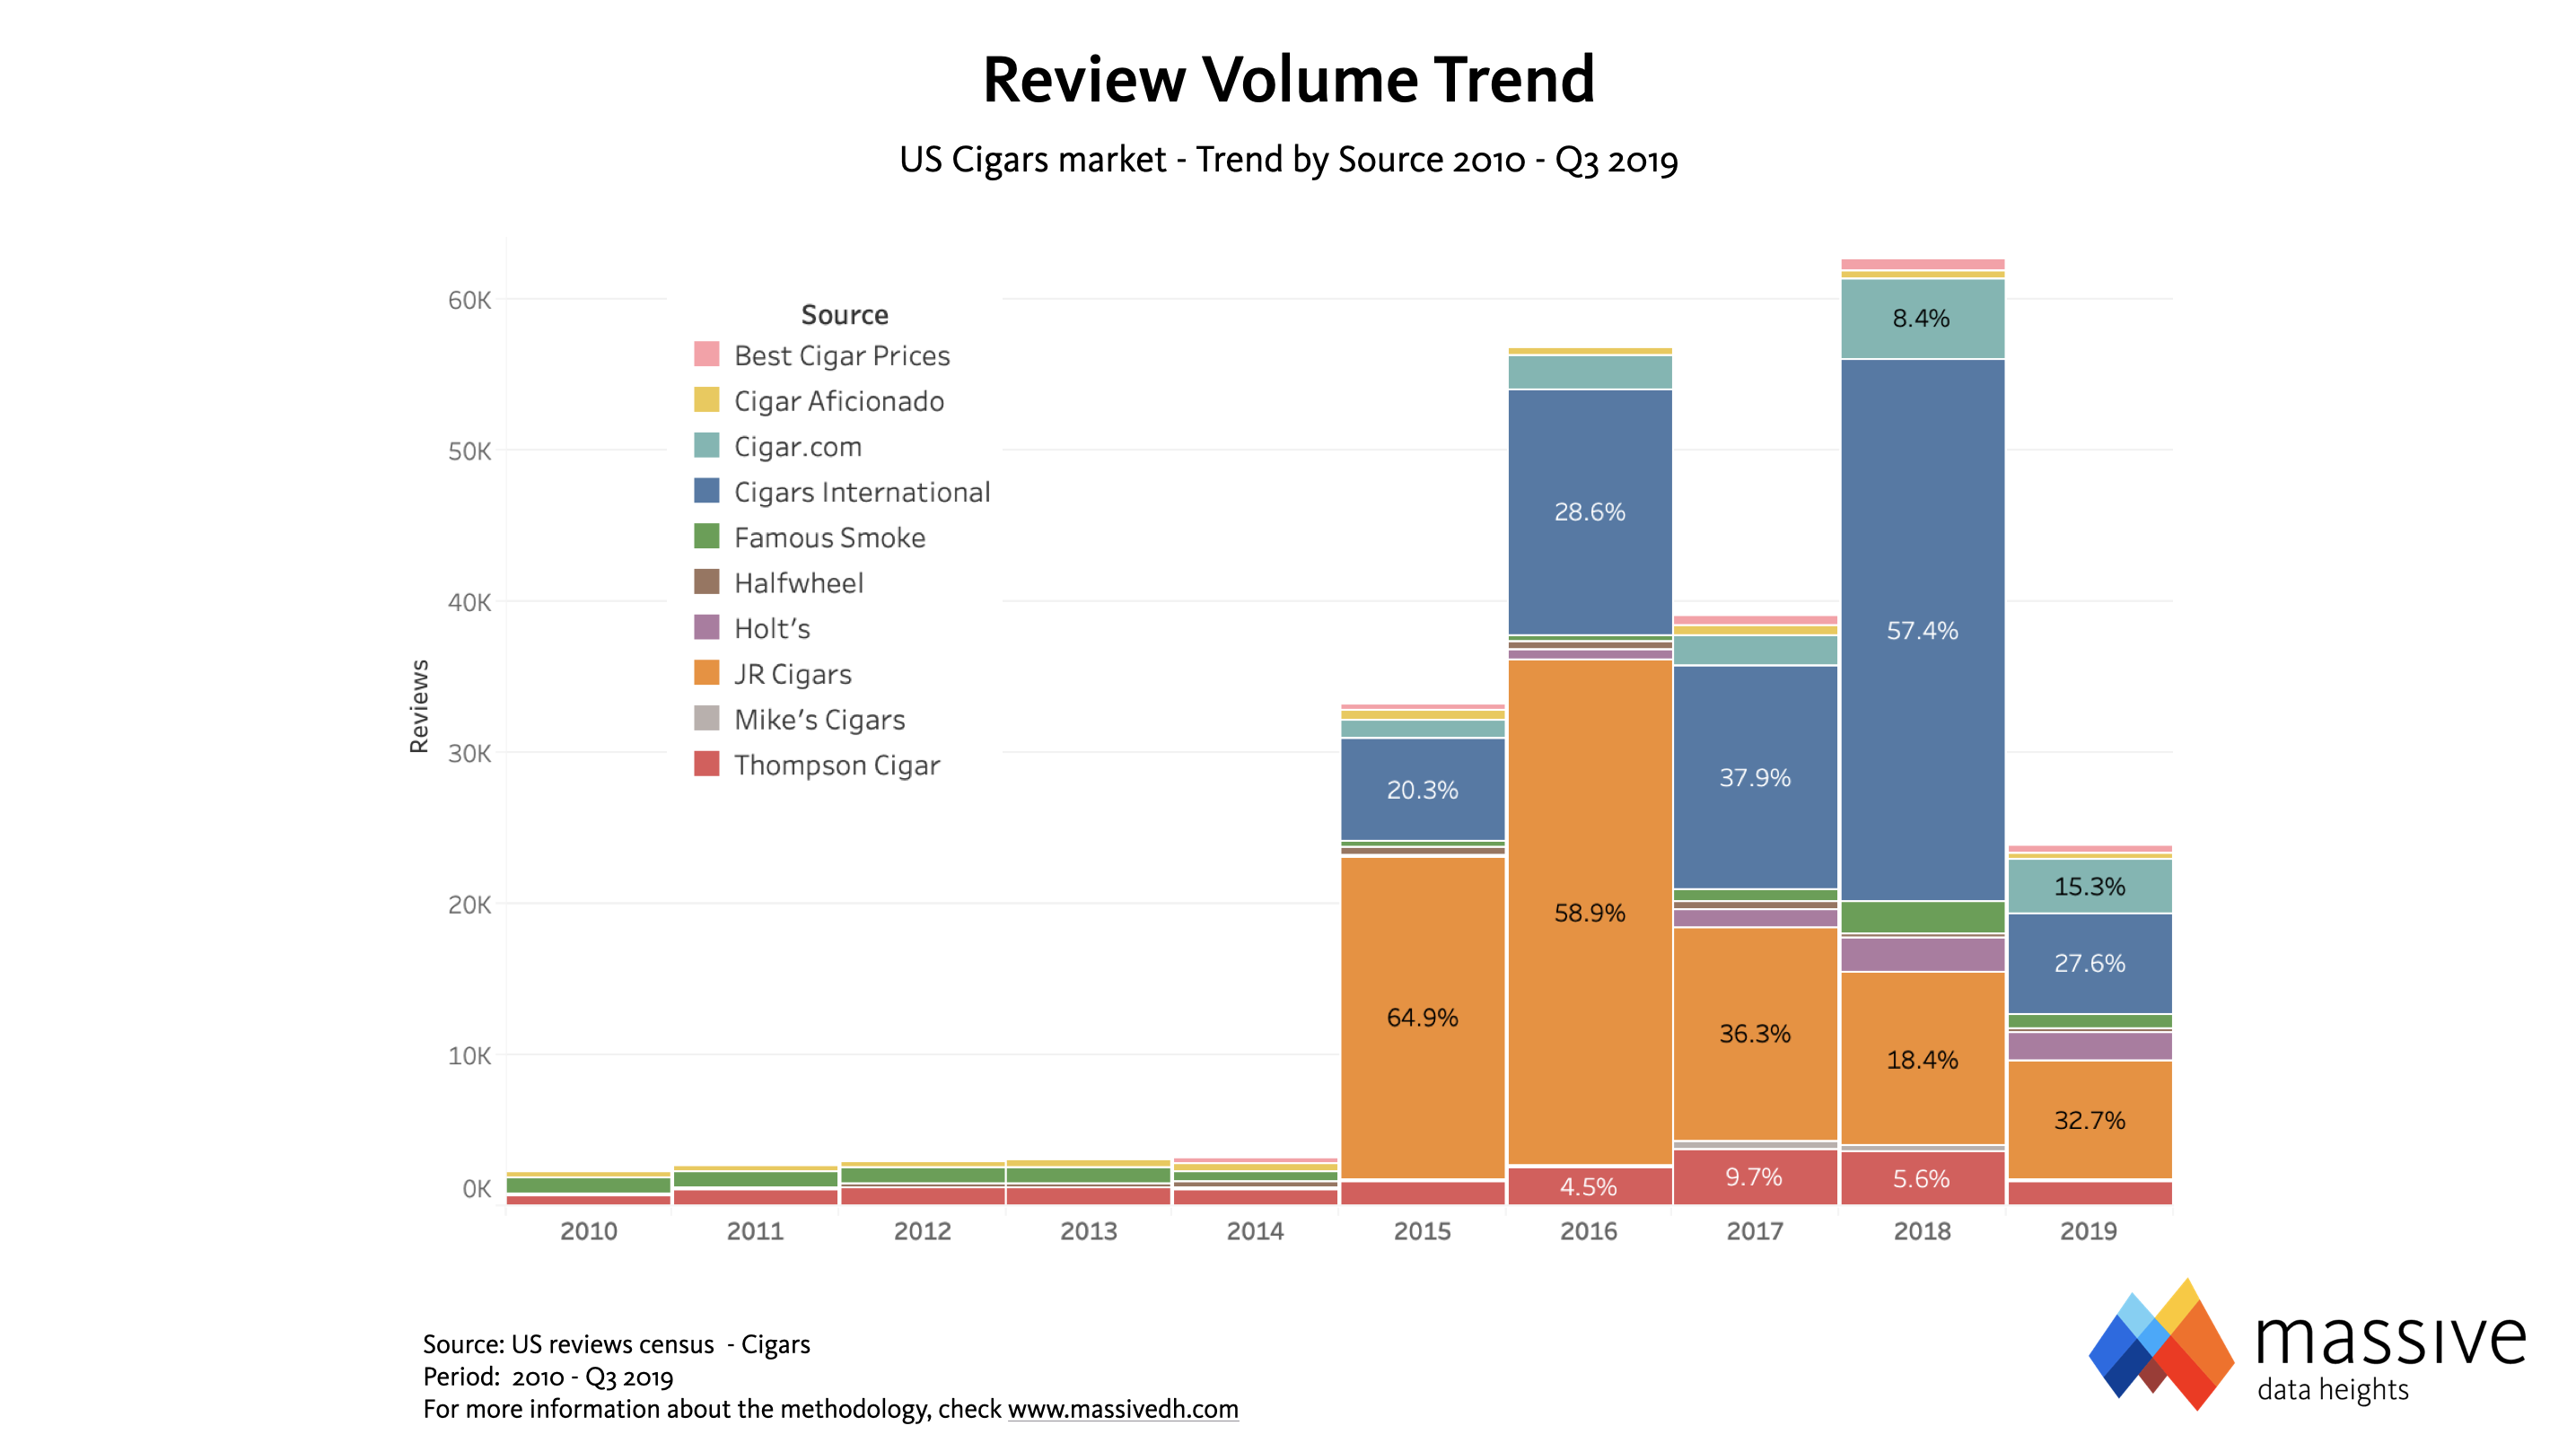 Cigar Reviews Volume Trend